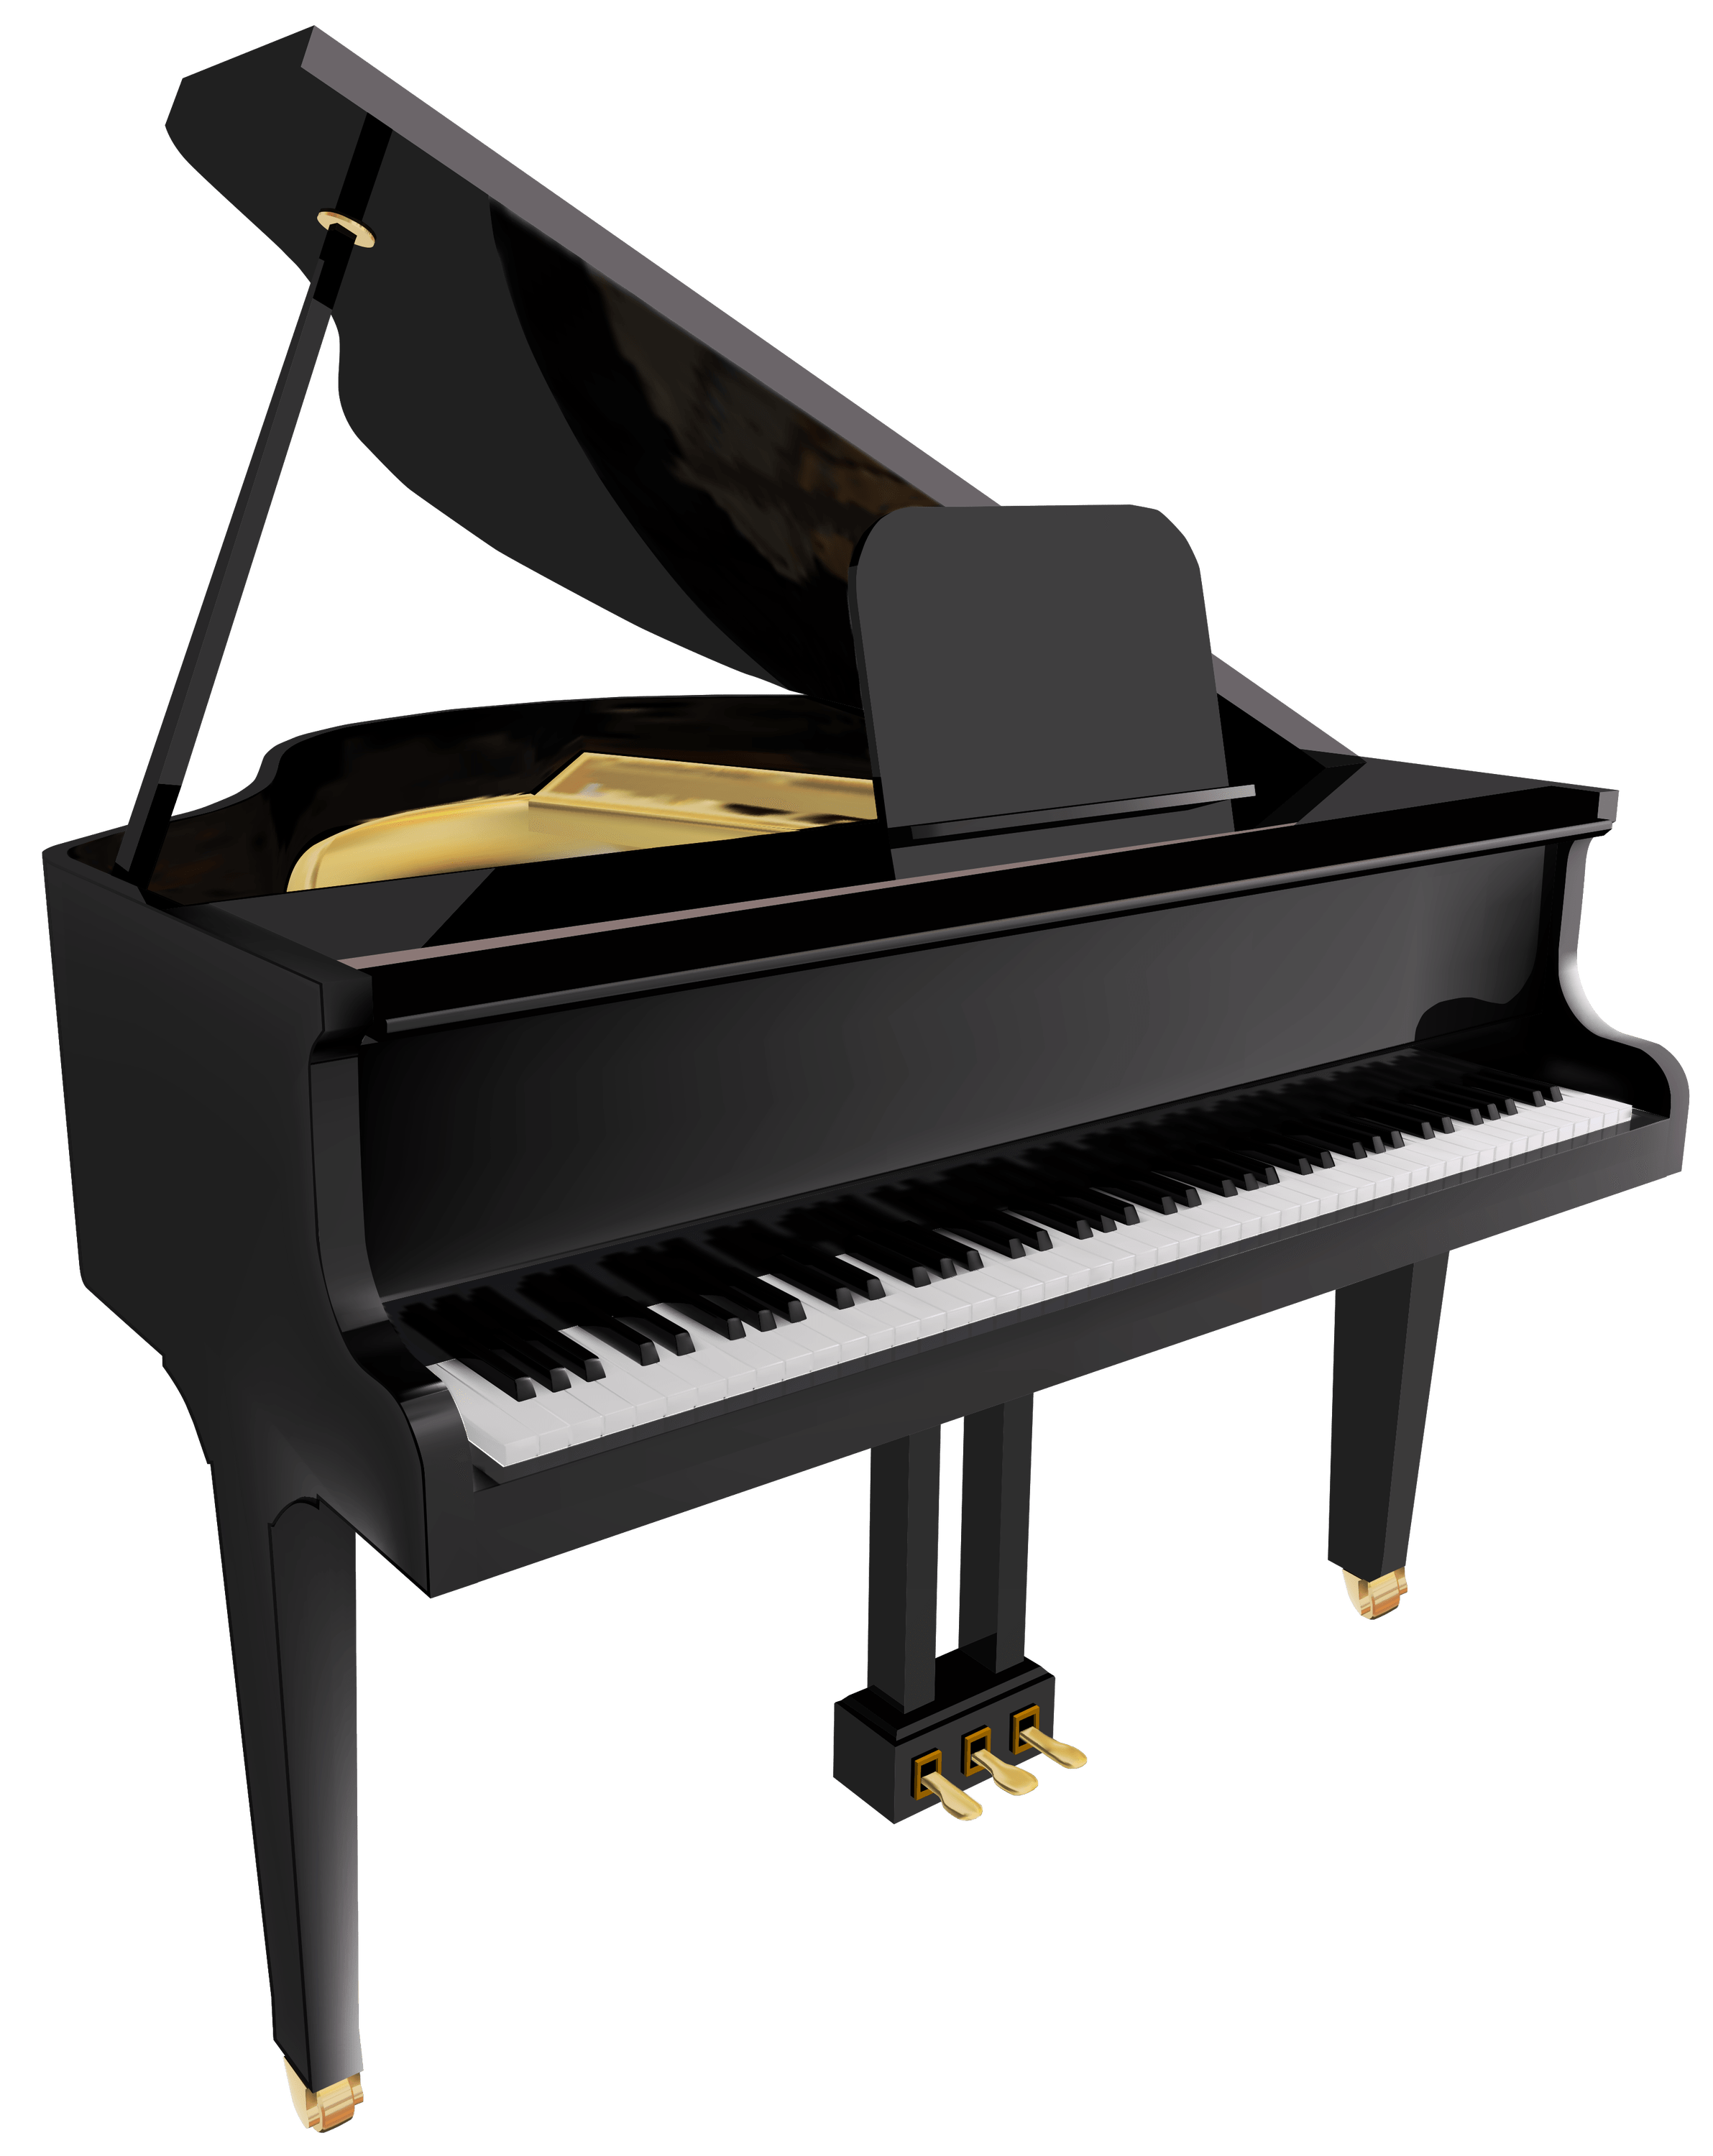 Transparent png stickpng objects. Piano clipart